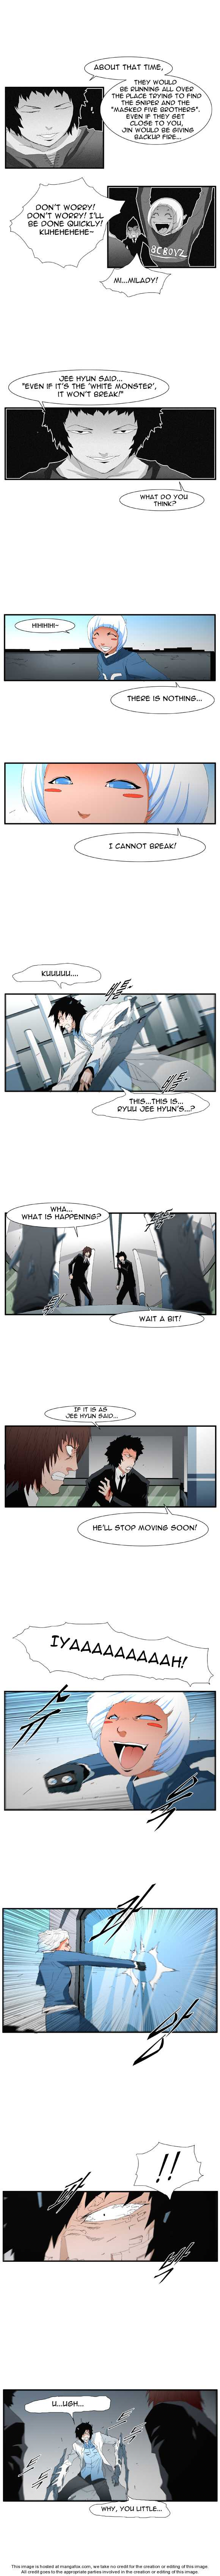 Trace 31 Page 2